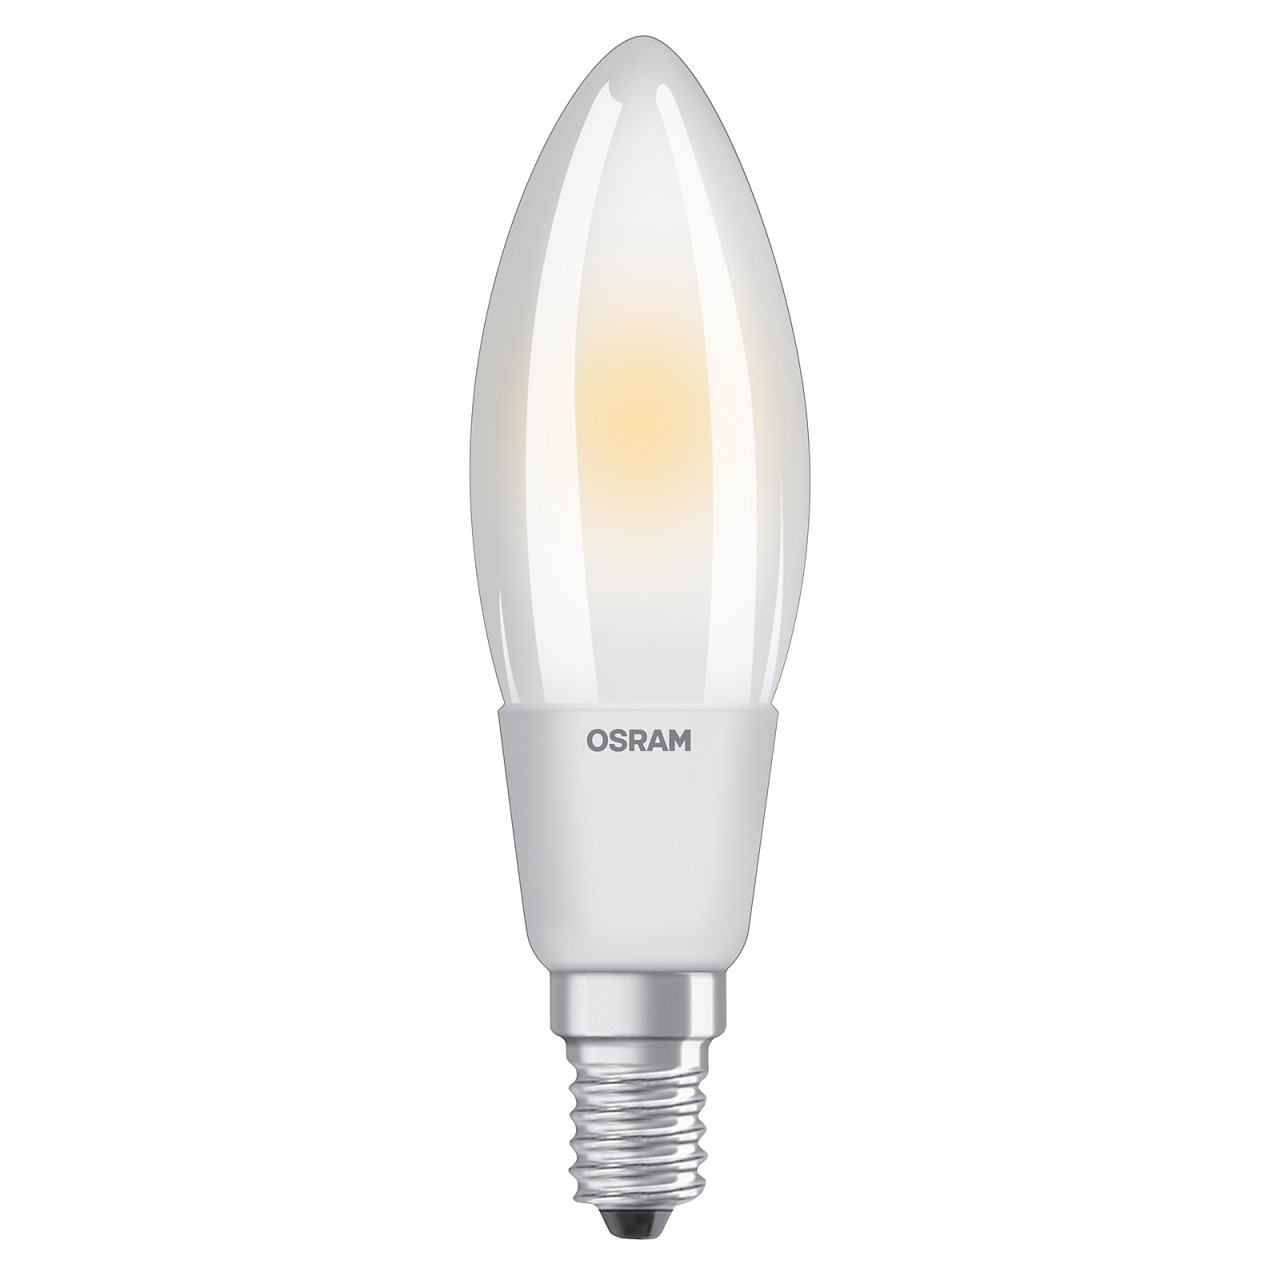 Led Dimmbar E14 Osram Retrofit Led Classic B 40 E14 5w Wie 40 Watt 470 Lm Warmweiß Dimmbar